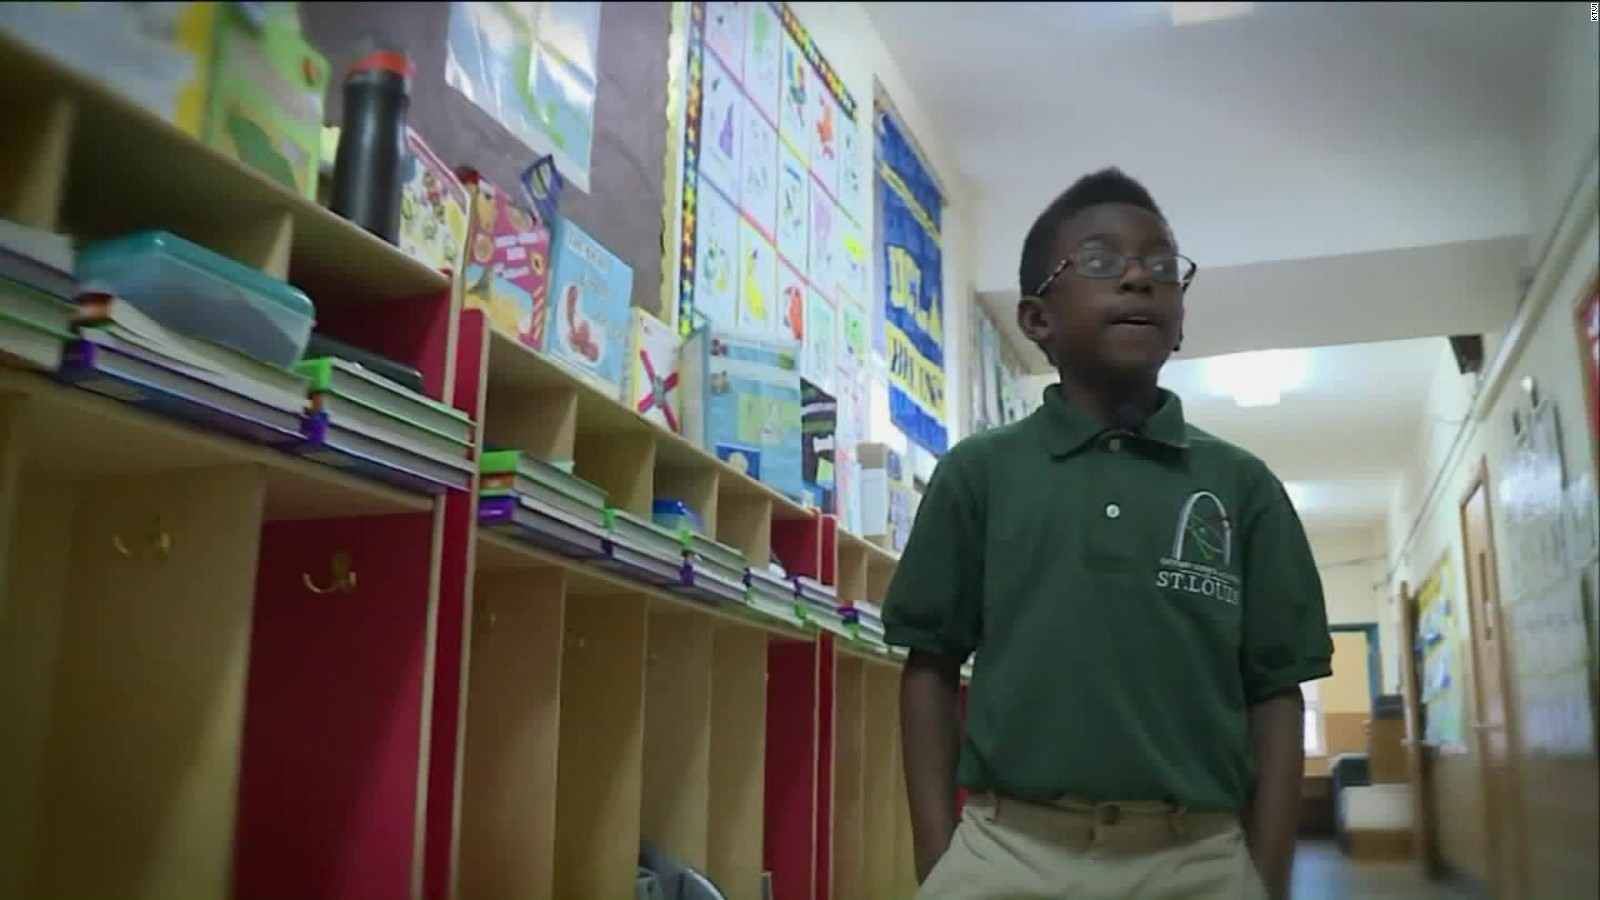 Lawsuit Alleges Mississippi Deprives >> Student Can T Attend School Because Of His Skin Color